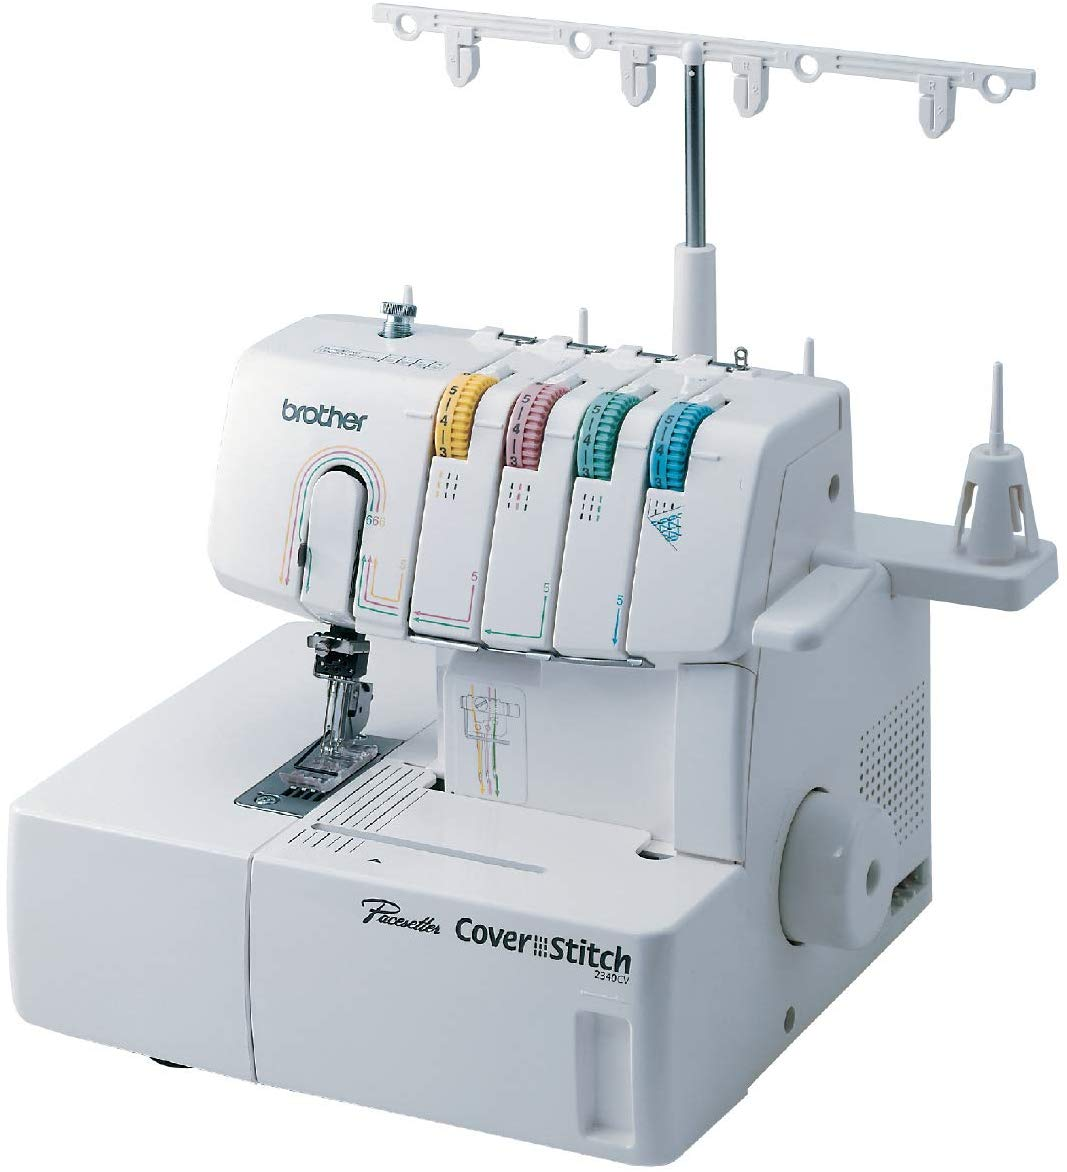 Brother 2340CV Cover Stitch Sewing Machine - Serger Sewing Machines